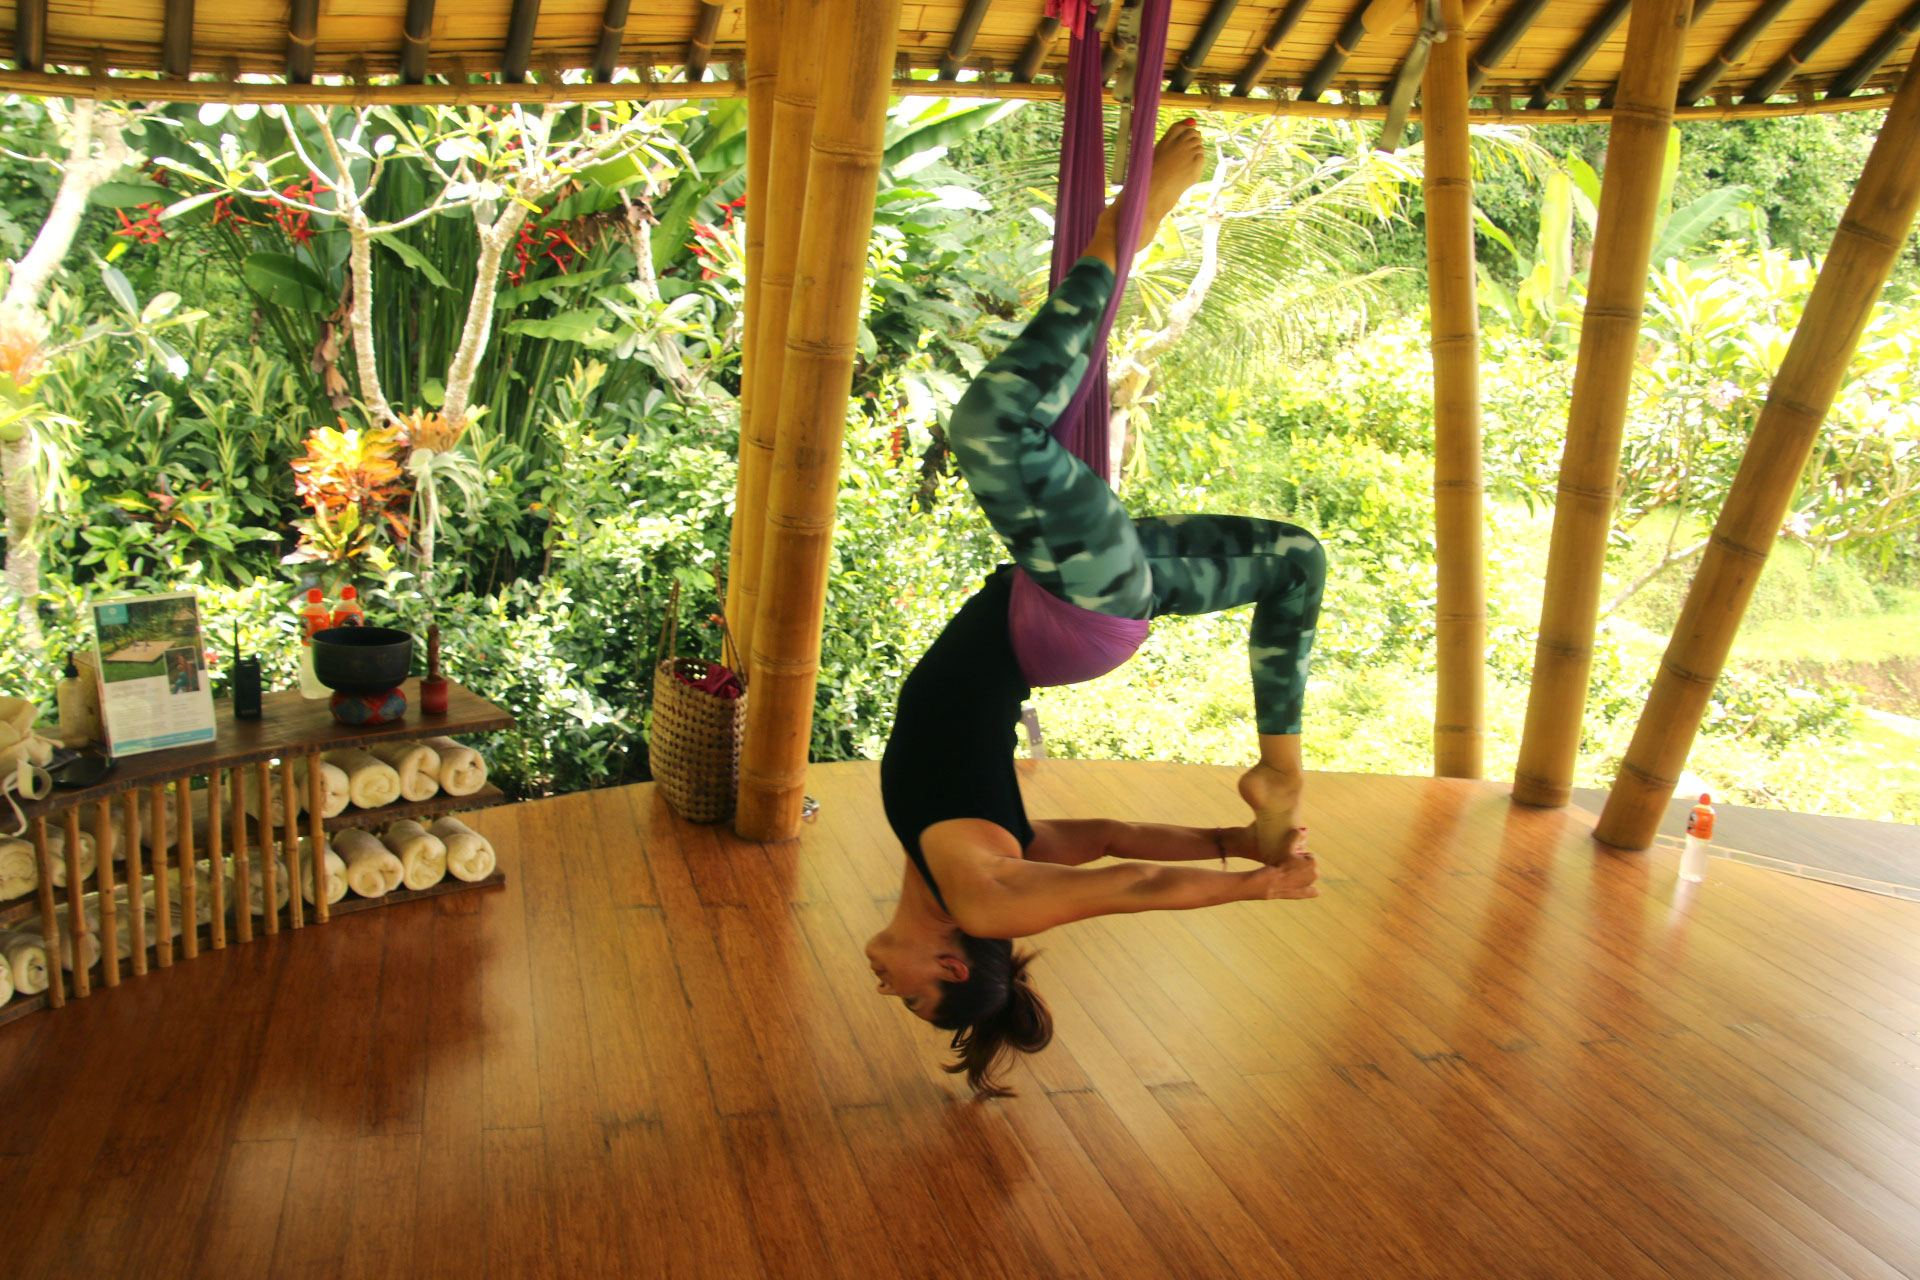 Thumbnail for The one dreamy destination every yogi needs to visit